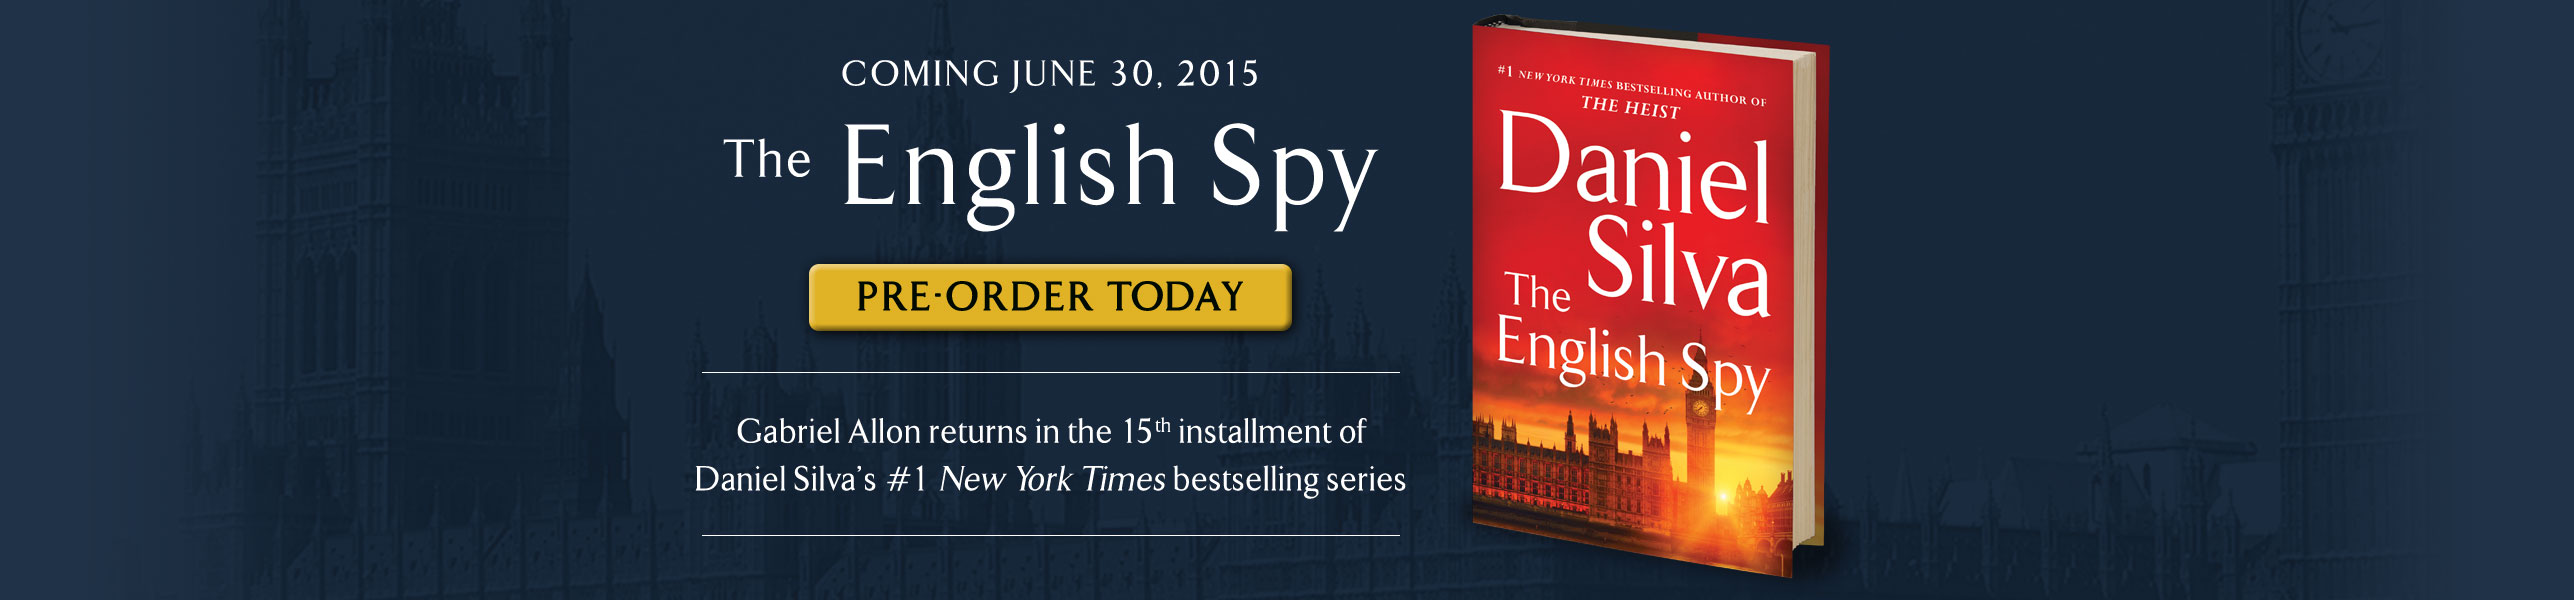 The English Spy, the 15th book in Daniel Silva's #1 New York Times bestselling Gabriel Allon Series